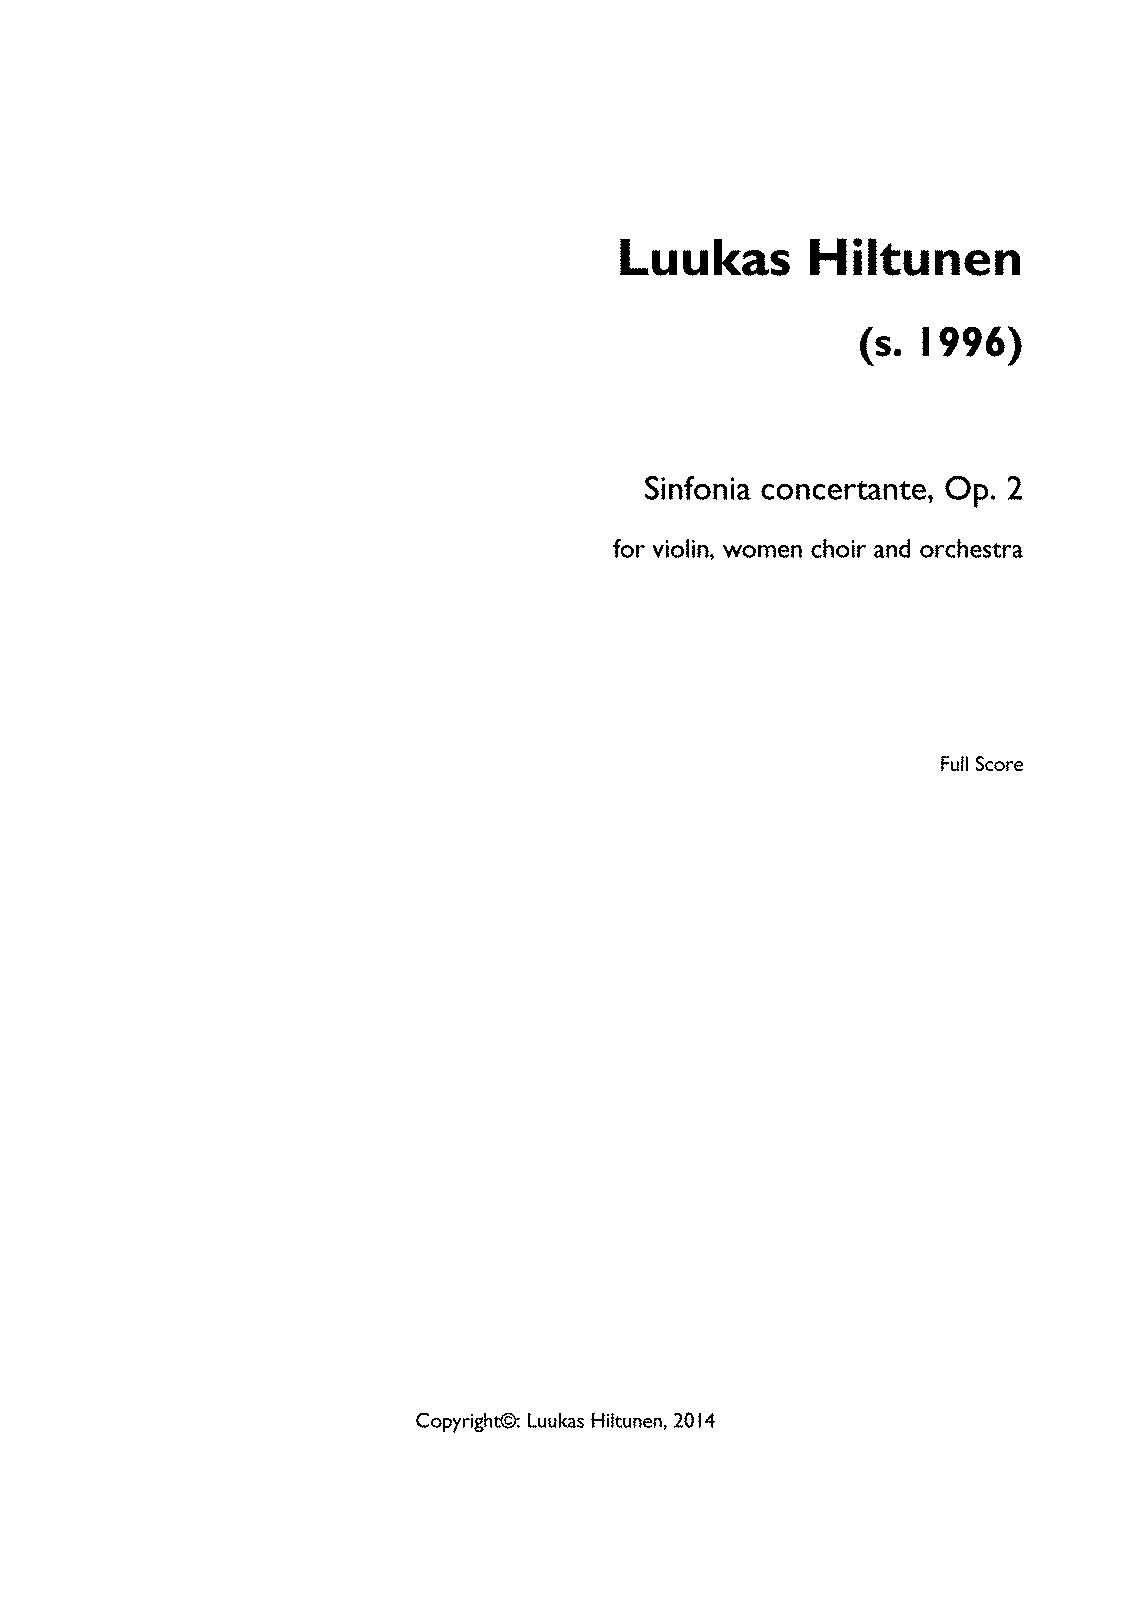 PMLP454115-Sinfonia concertante title, contents and instrumentation.pdf